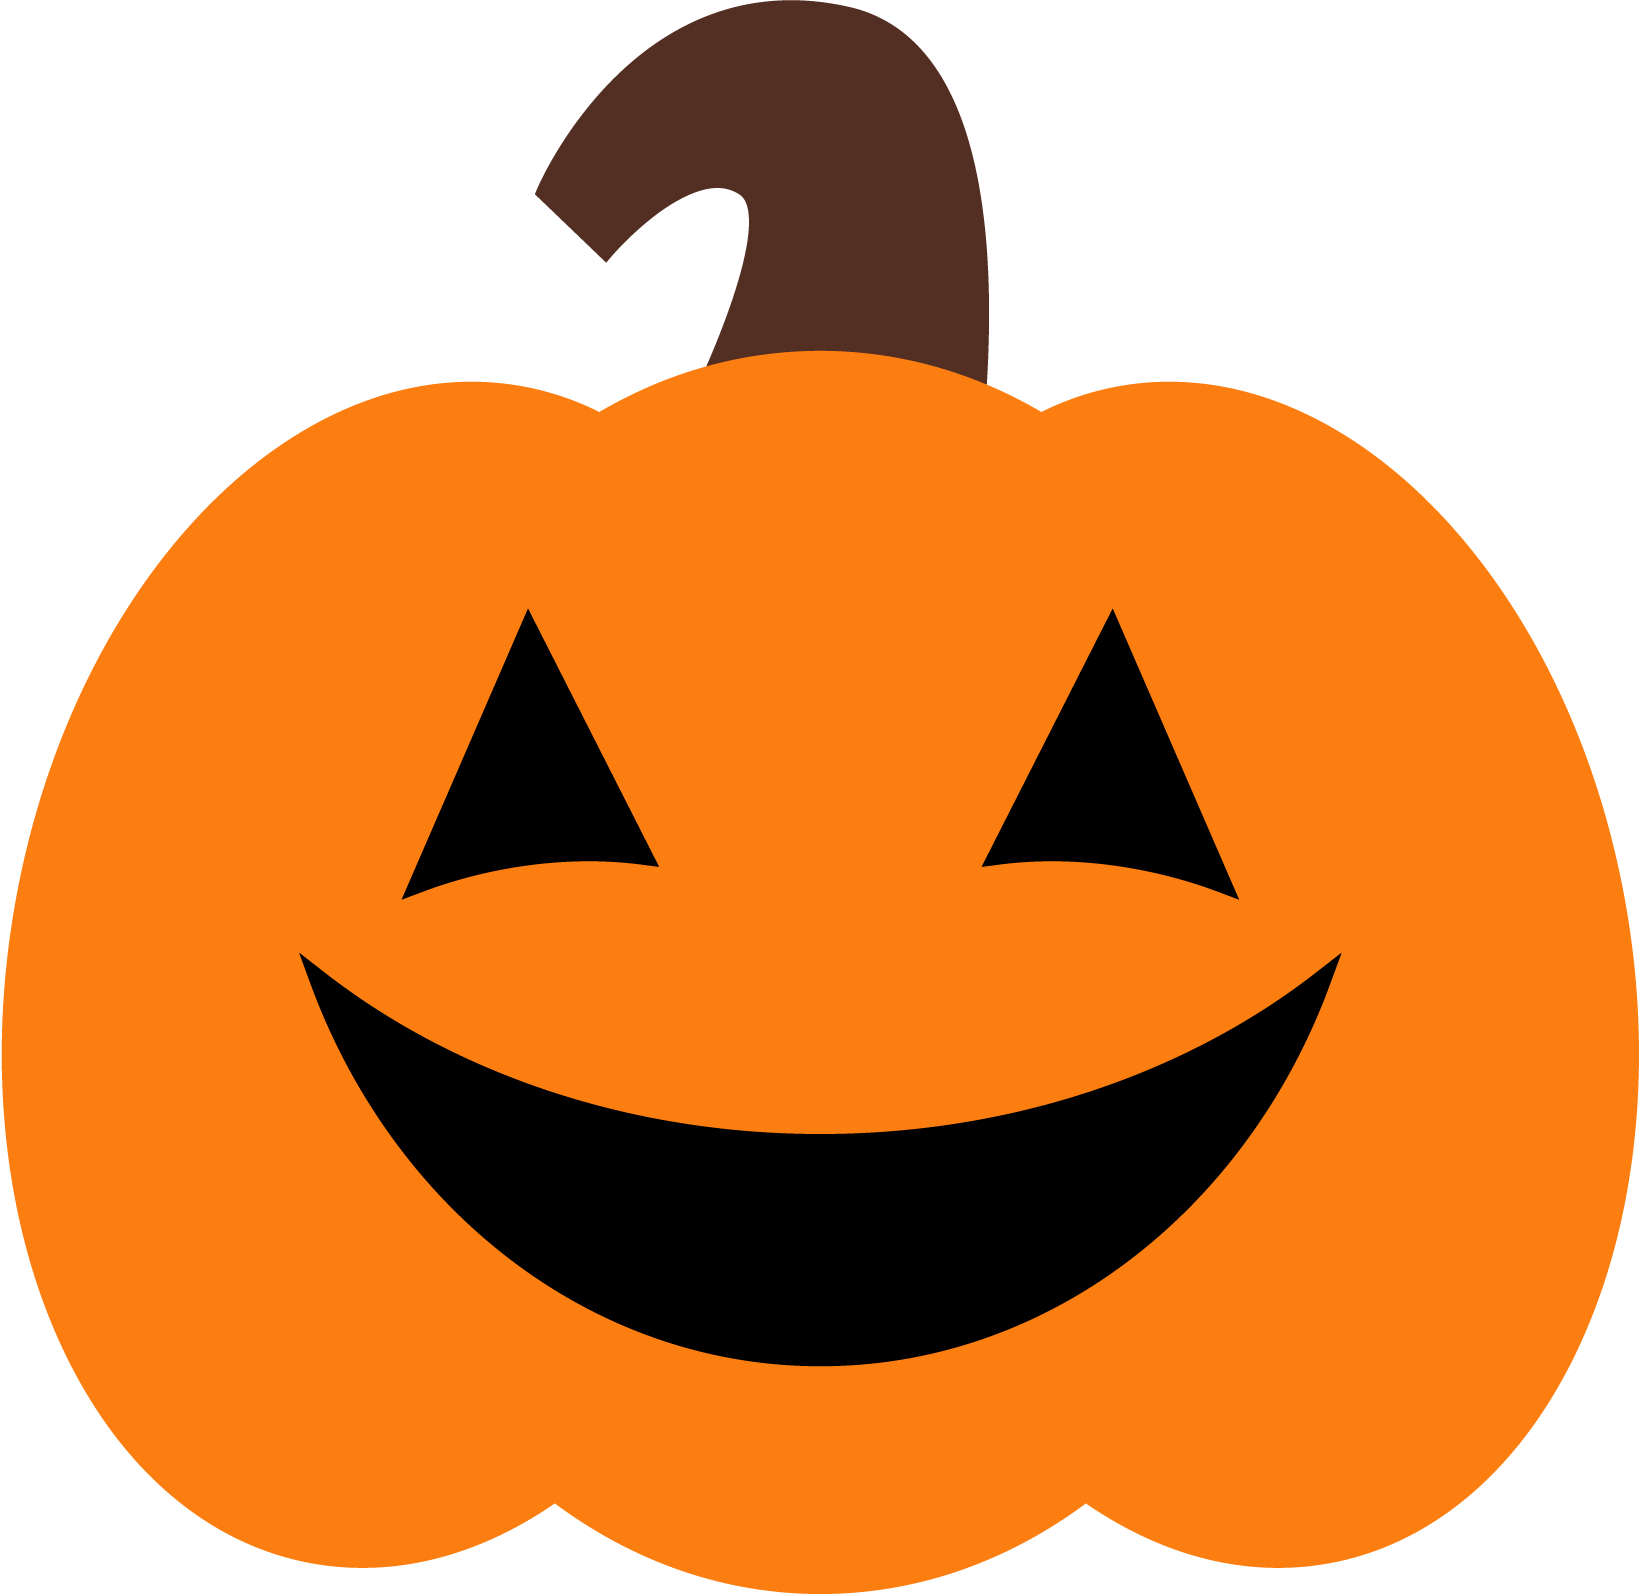 Images For Cute Pumpkin Clipart-Images For Cute Pumpkin Clipart-8